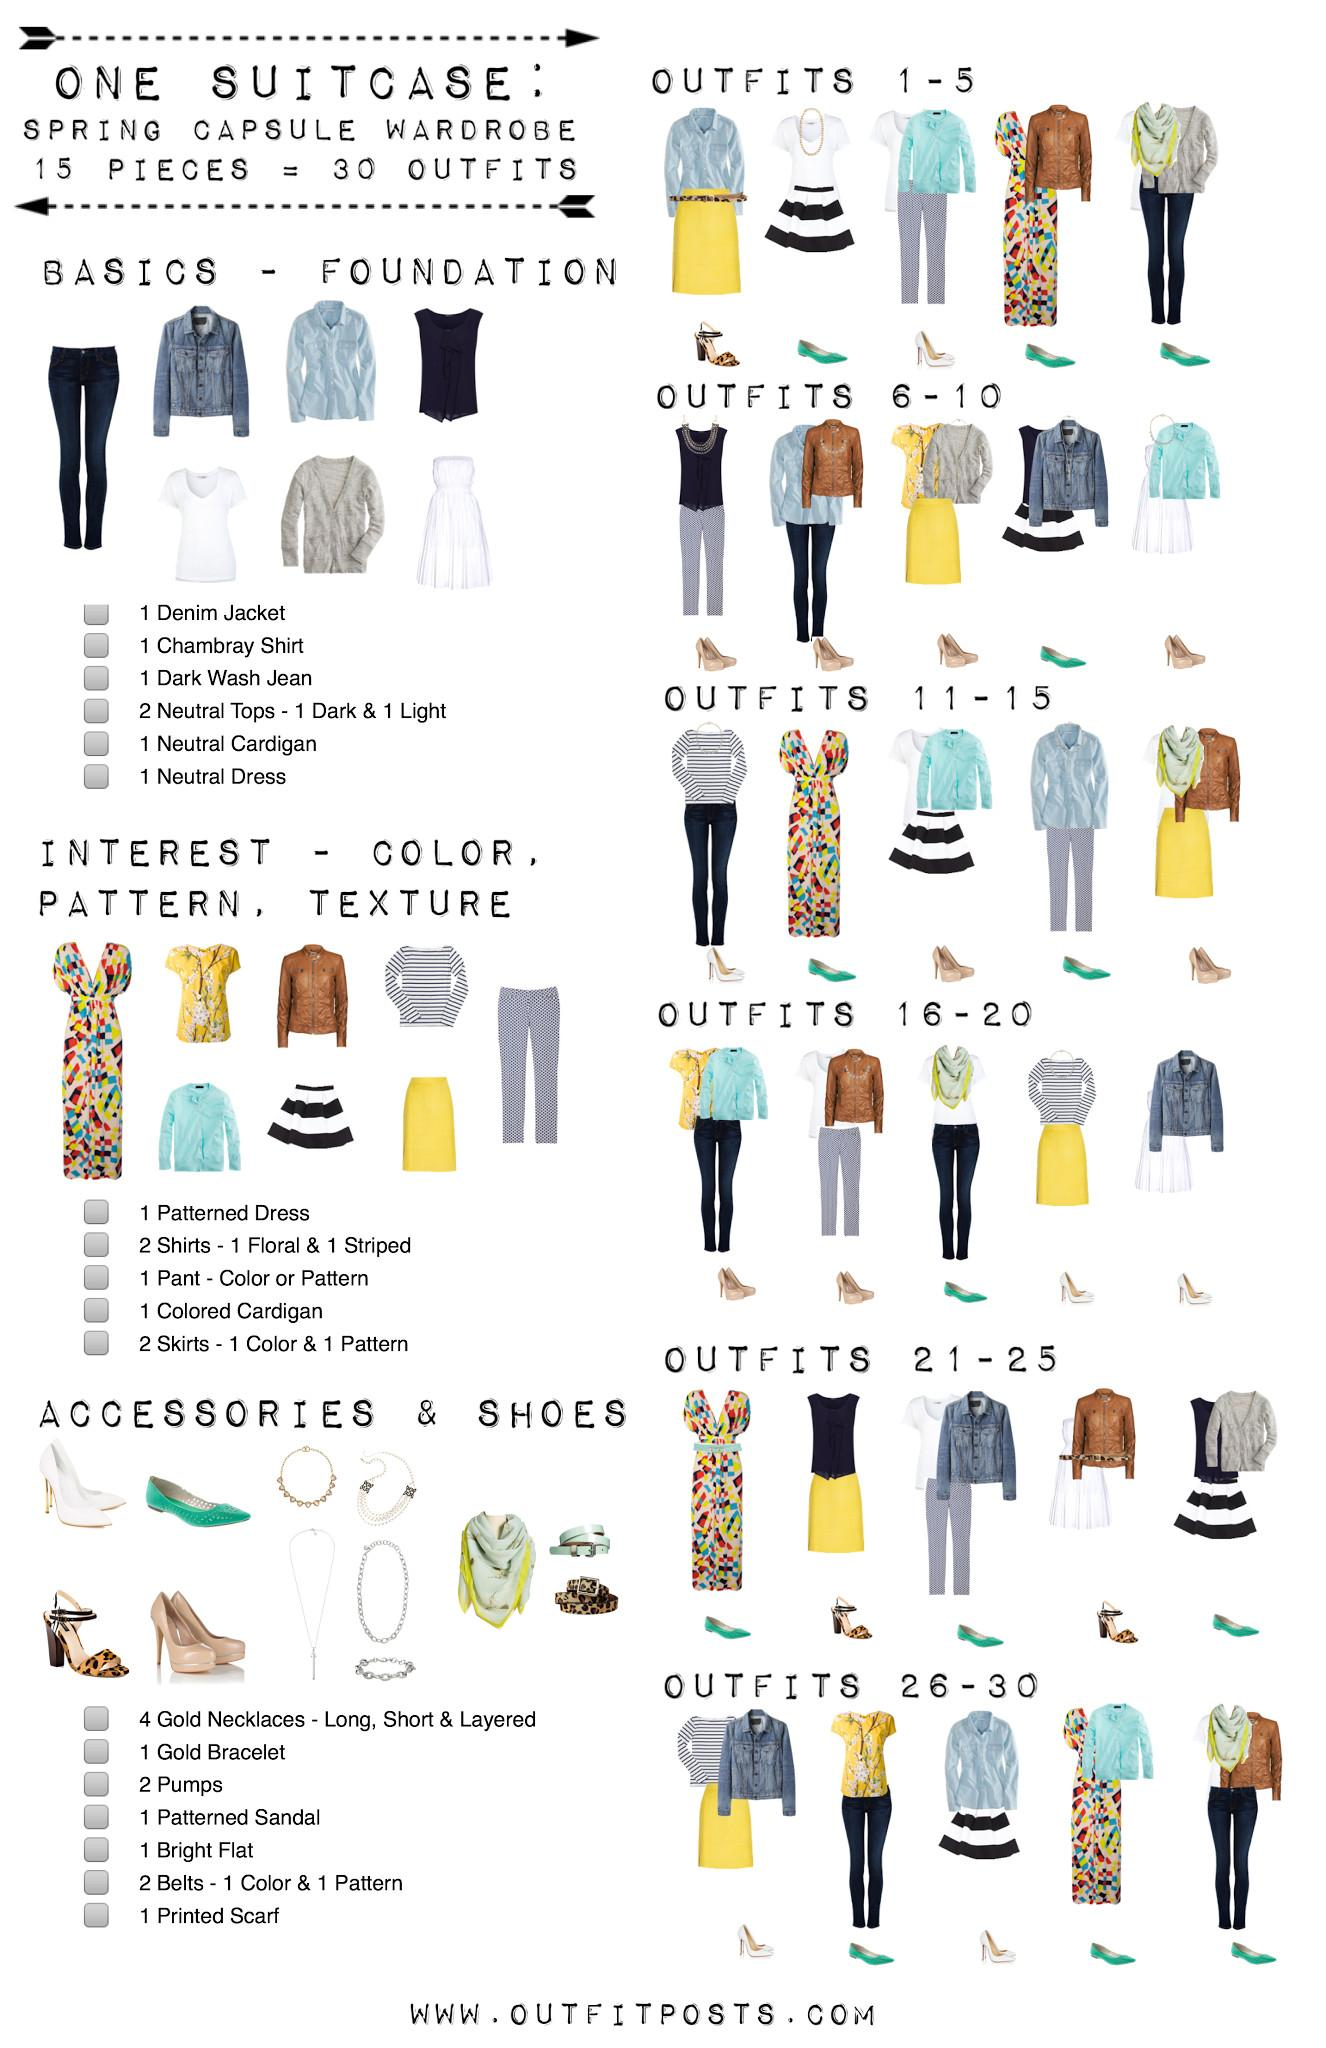 Easy Pieces Summer Outfits Capsule Wardrobe